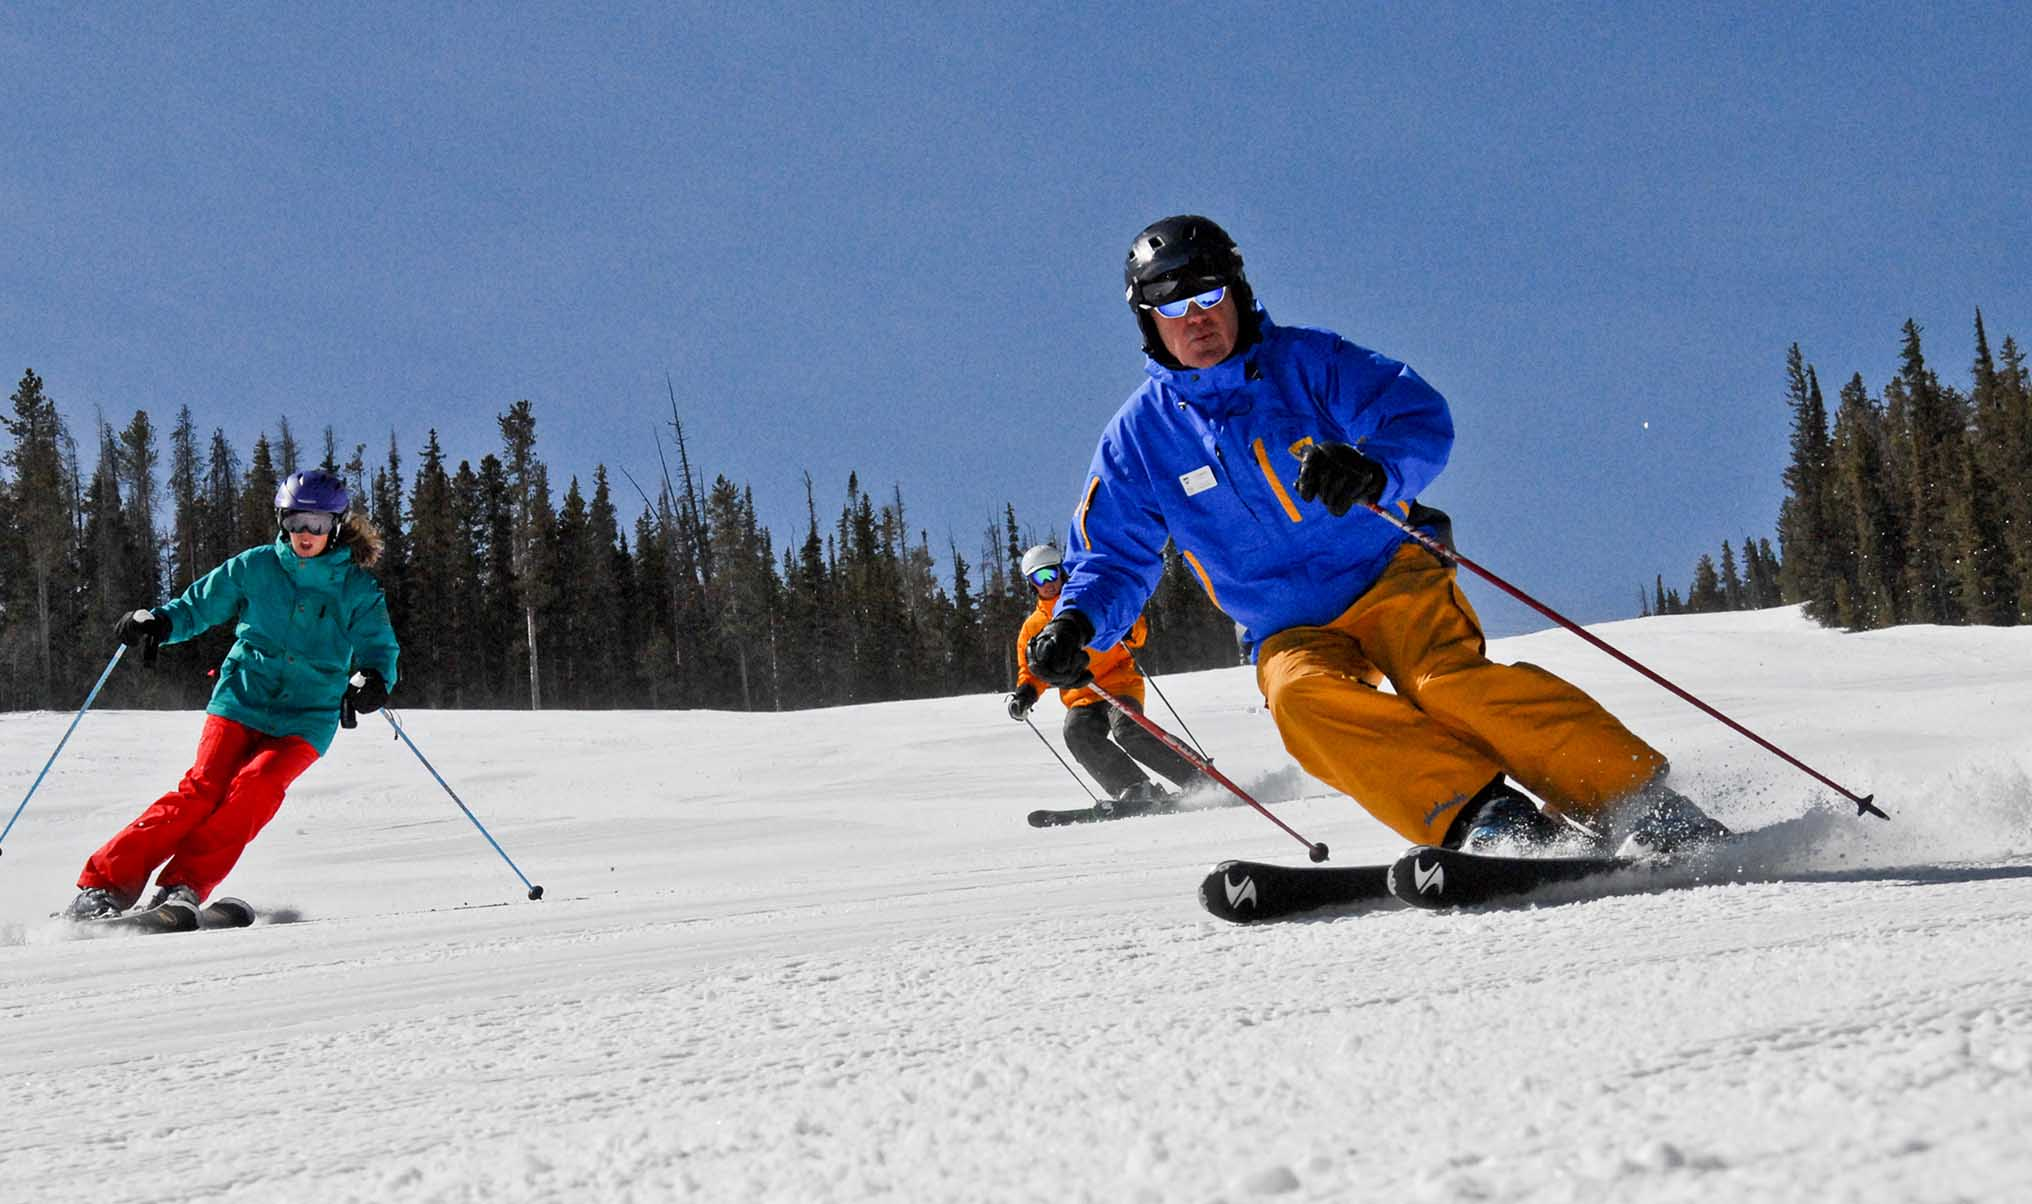 Winter Park Co Options Gateway Reservations Lodging